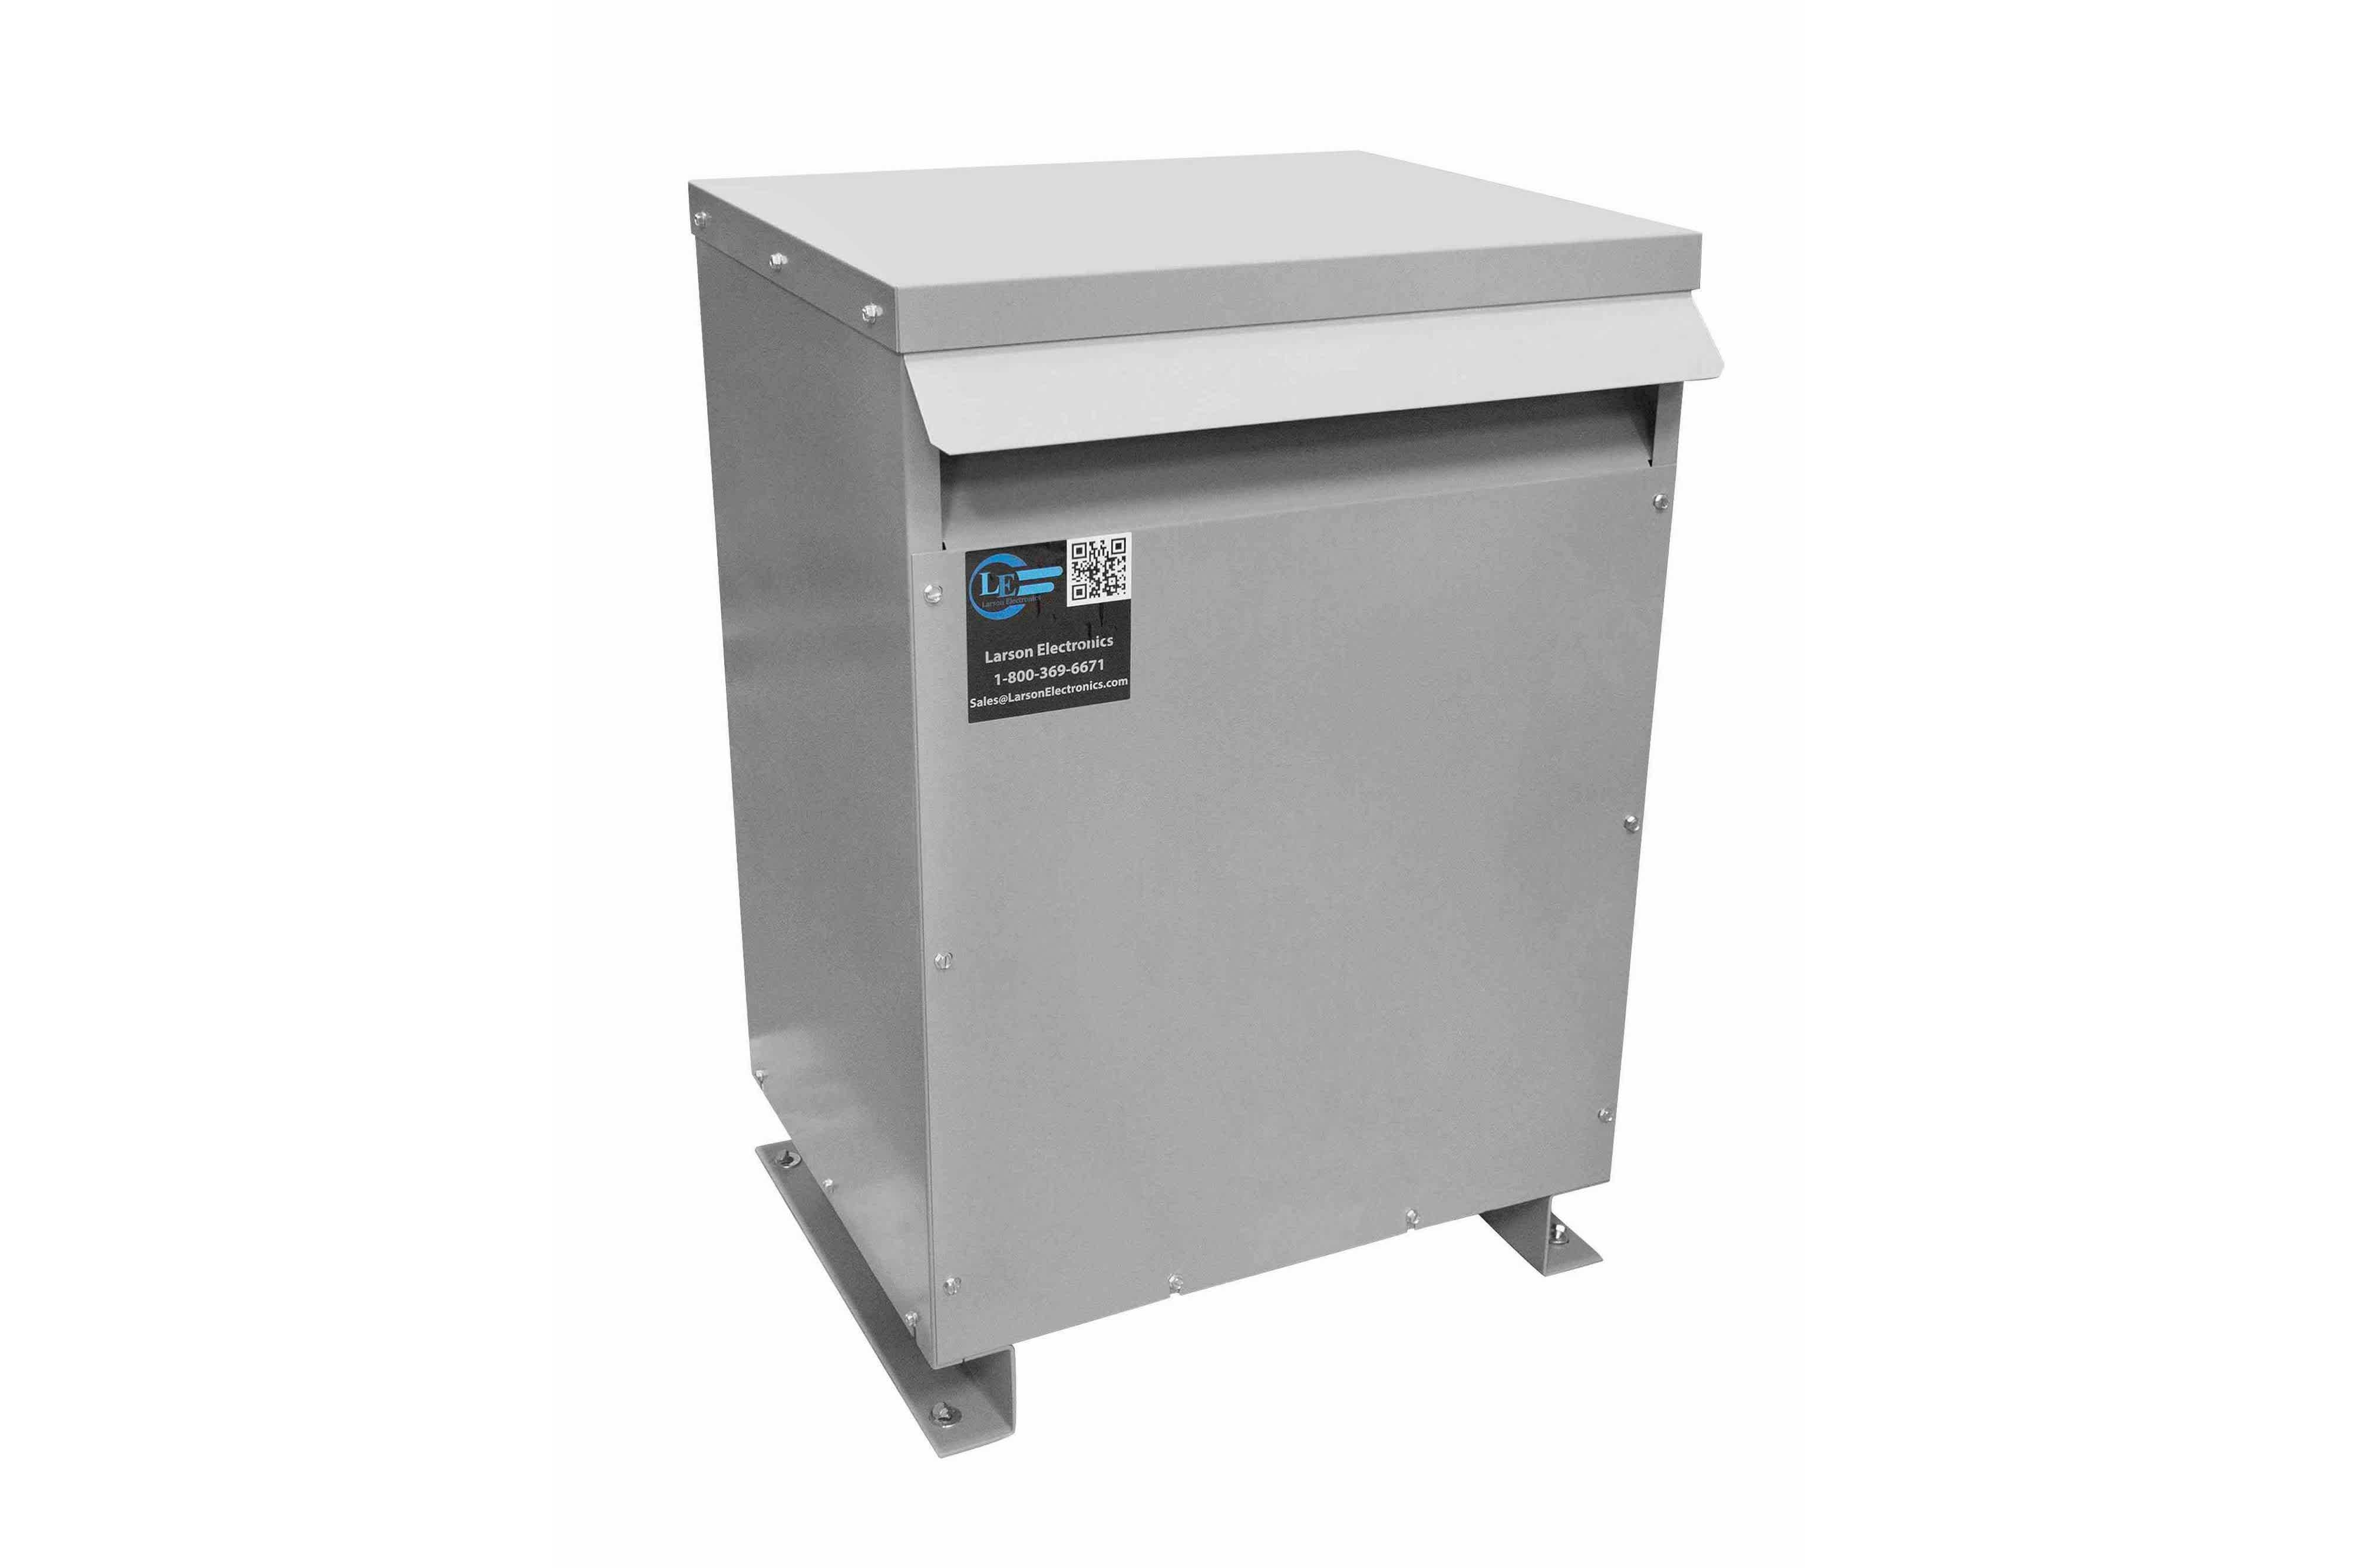 400 kVA 3PH DOE Transformer, 220V Delta Primary, 208Y/120 Wye-N Secondary, N3R, Ventilated, 60 Hz